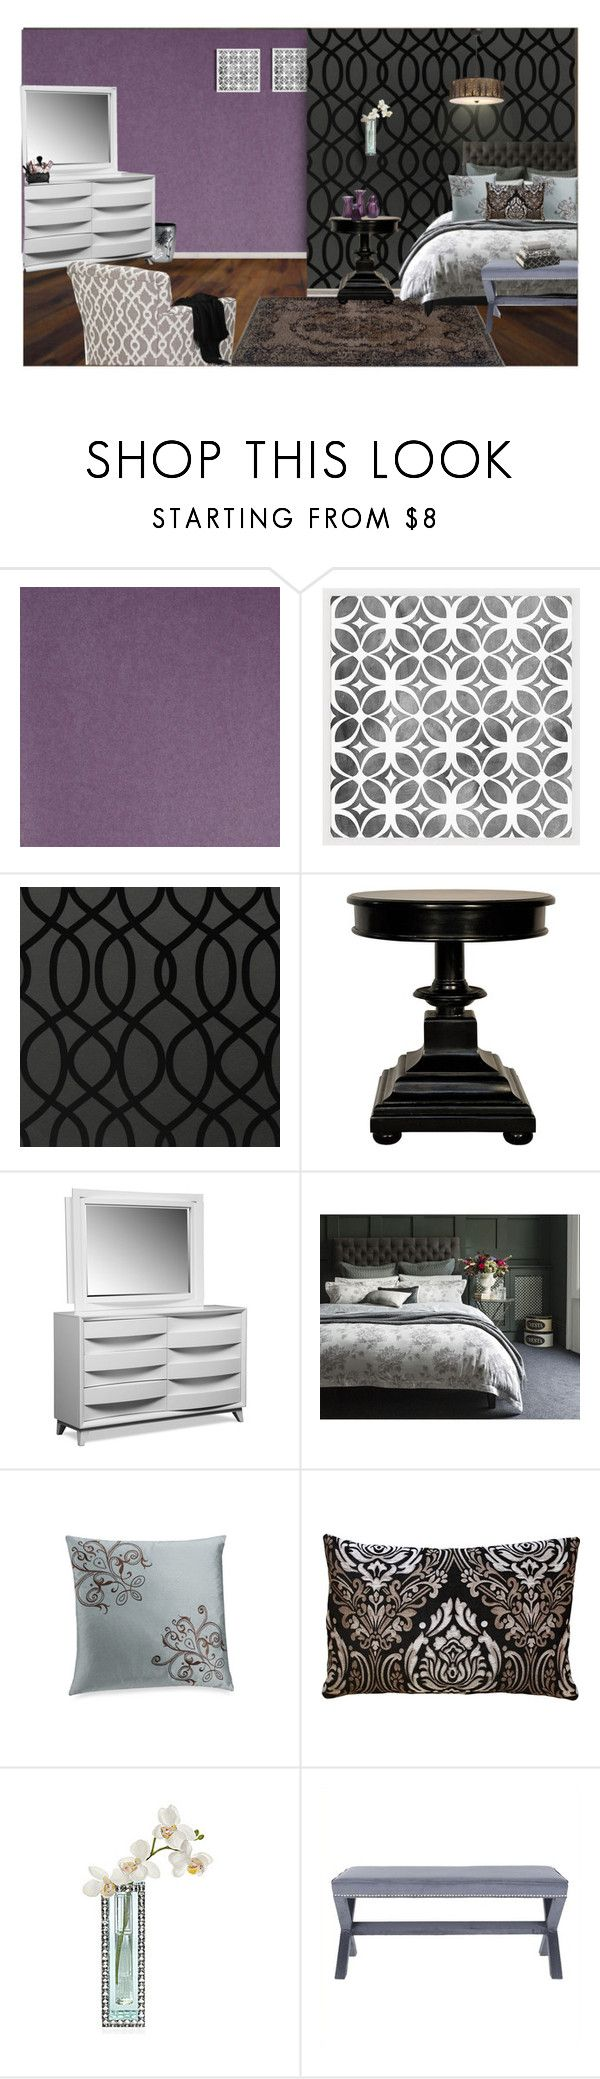 """""""2nd home set"""" by sassiesavy ❤ liked on Polyvore featuring interior, interiors, interior design, home, home decor, interior decorating, Pottery Barn, Graham & Brown, Noir and Christy"""